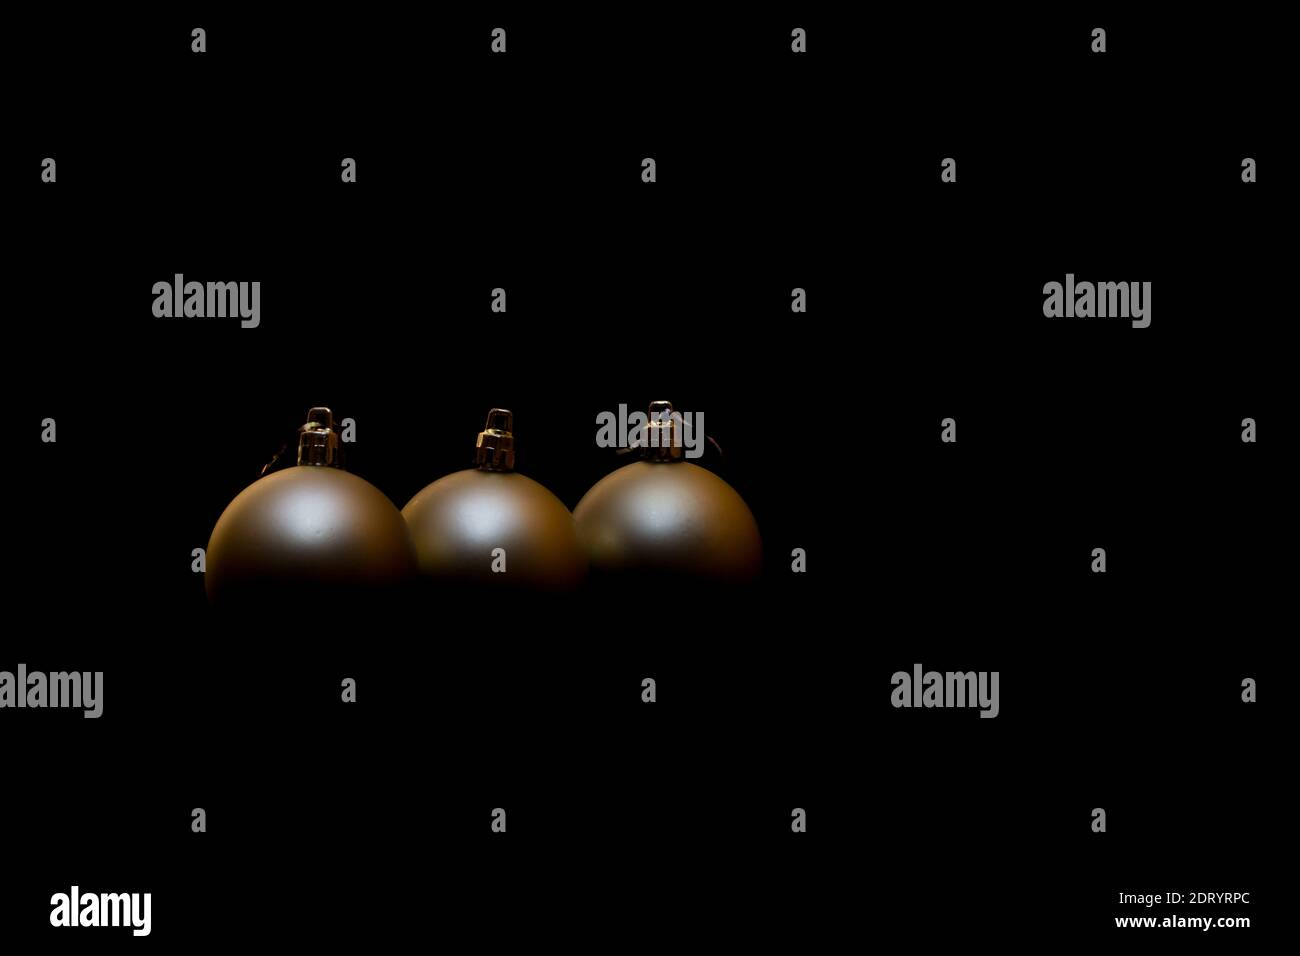 Christmas decorations in the shape of a ball, golden color on a black background Stock Photo